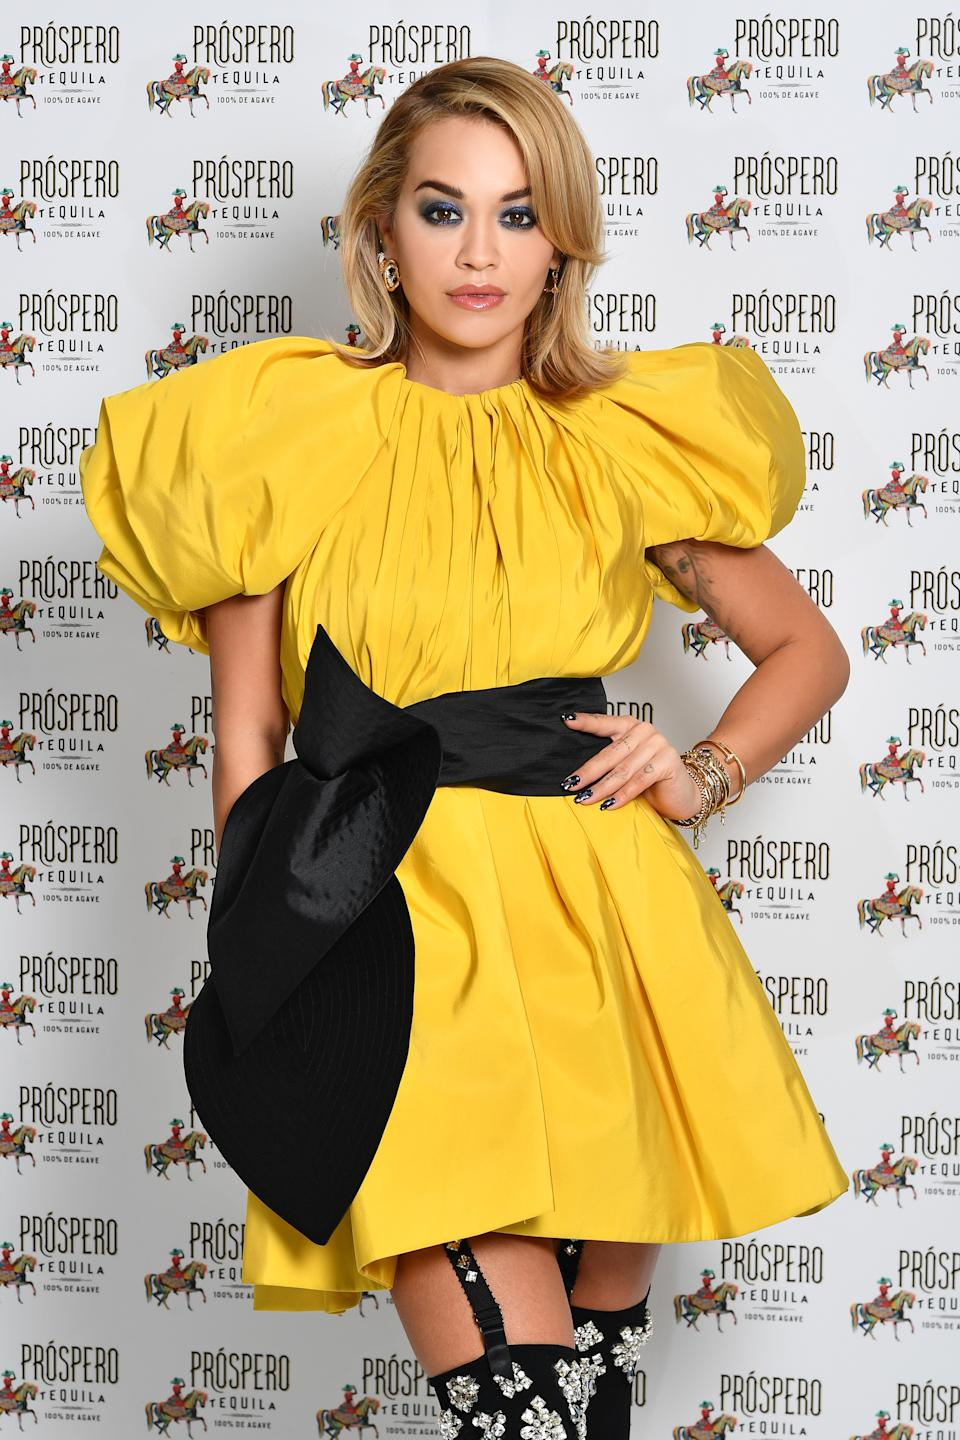 LONDON, ENGLAND - NOVEMBER 23: (EDITORS NOTE: This image has been retouched at the request of Artist's management.) In this image released on November 24th, Rita Ora poses during the Prospero Tequila UK Launch on November 23, 2020 in London, England. (Photo by Gareth Cattermole/Getty Images for ABA)